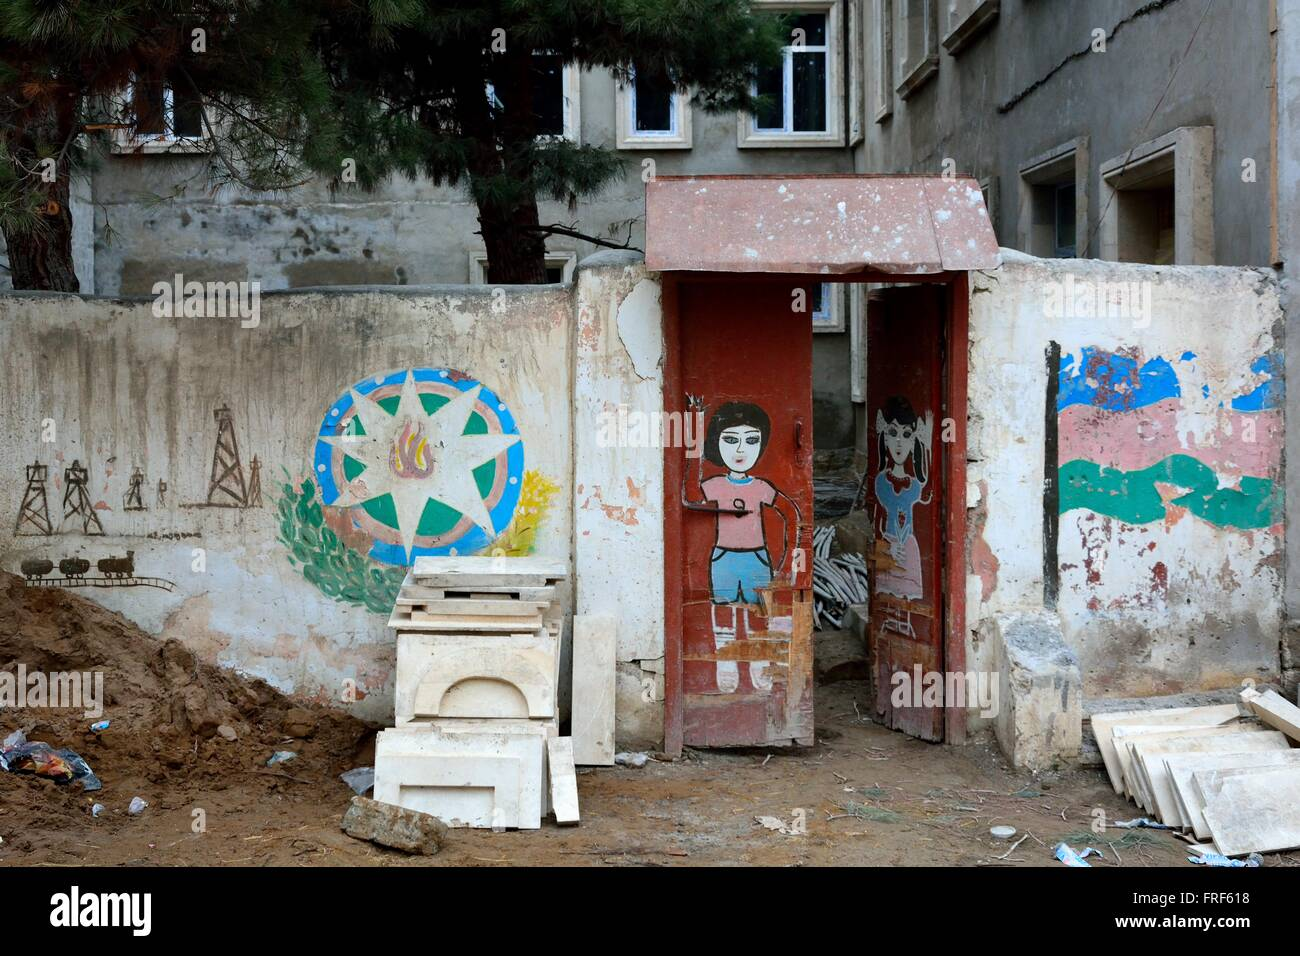 Street art on wall in Baku, capital of Azerbaijan. The Azerbaijani flag, as well as people, have been painted on - Stock Image